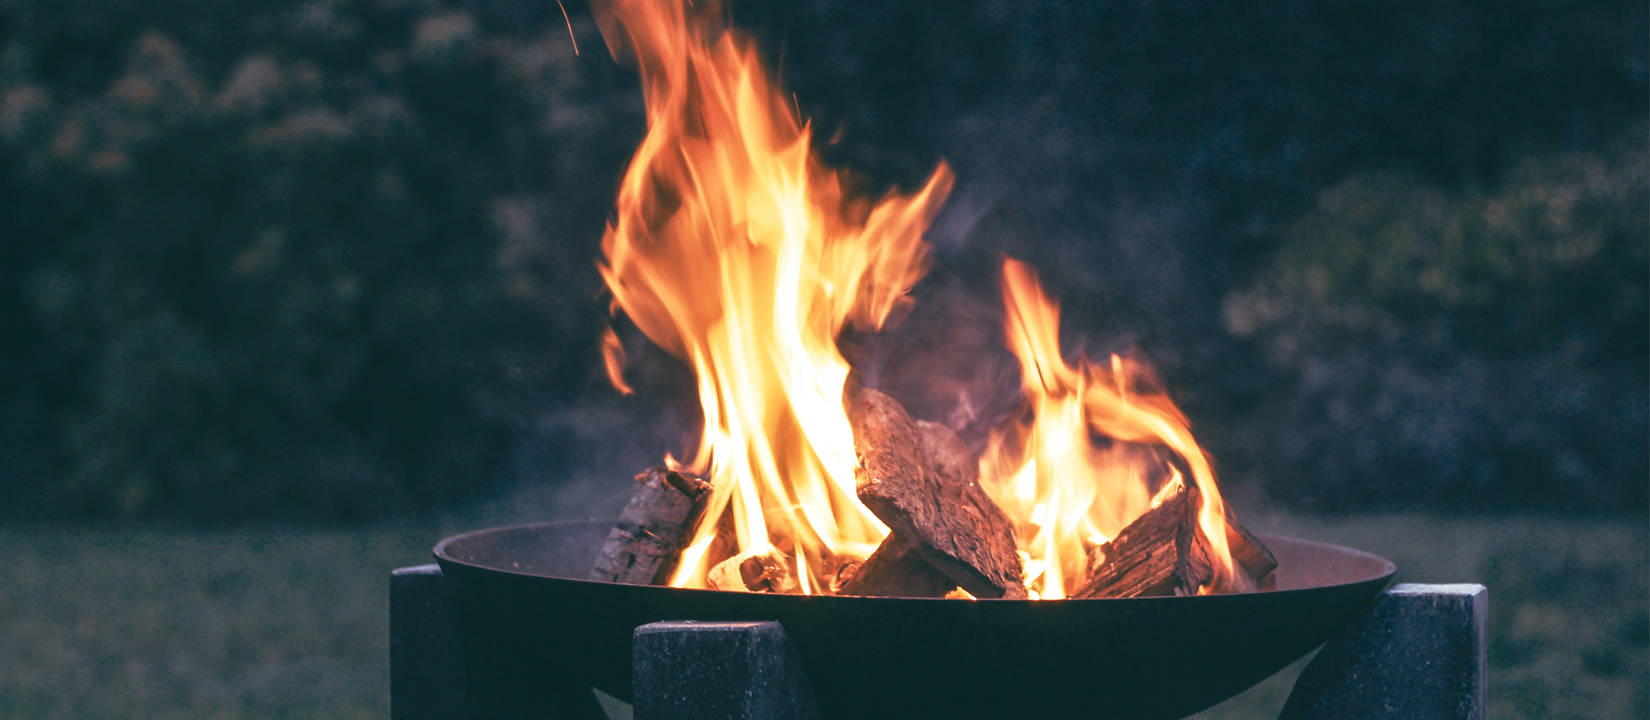 Warming Up With A Fire Pit Here Are A Few Things To Consider